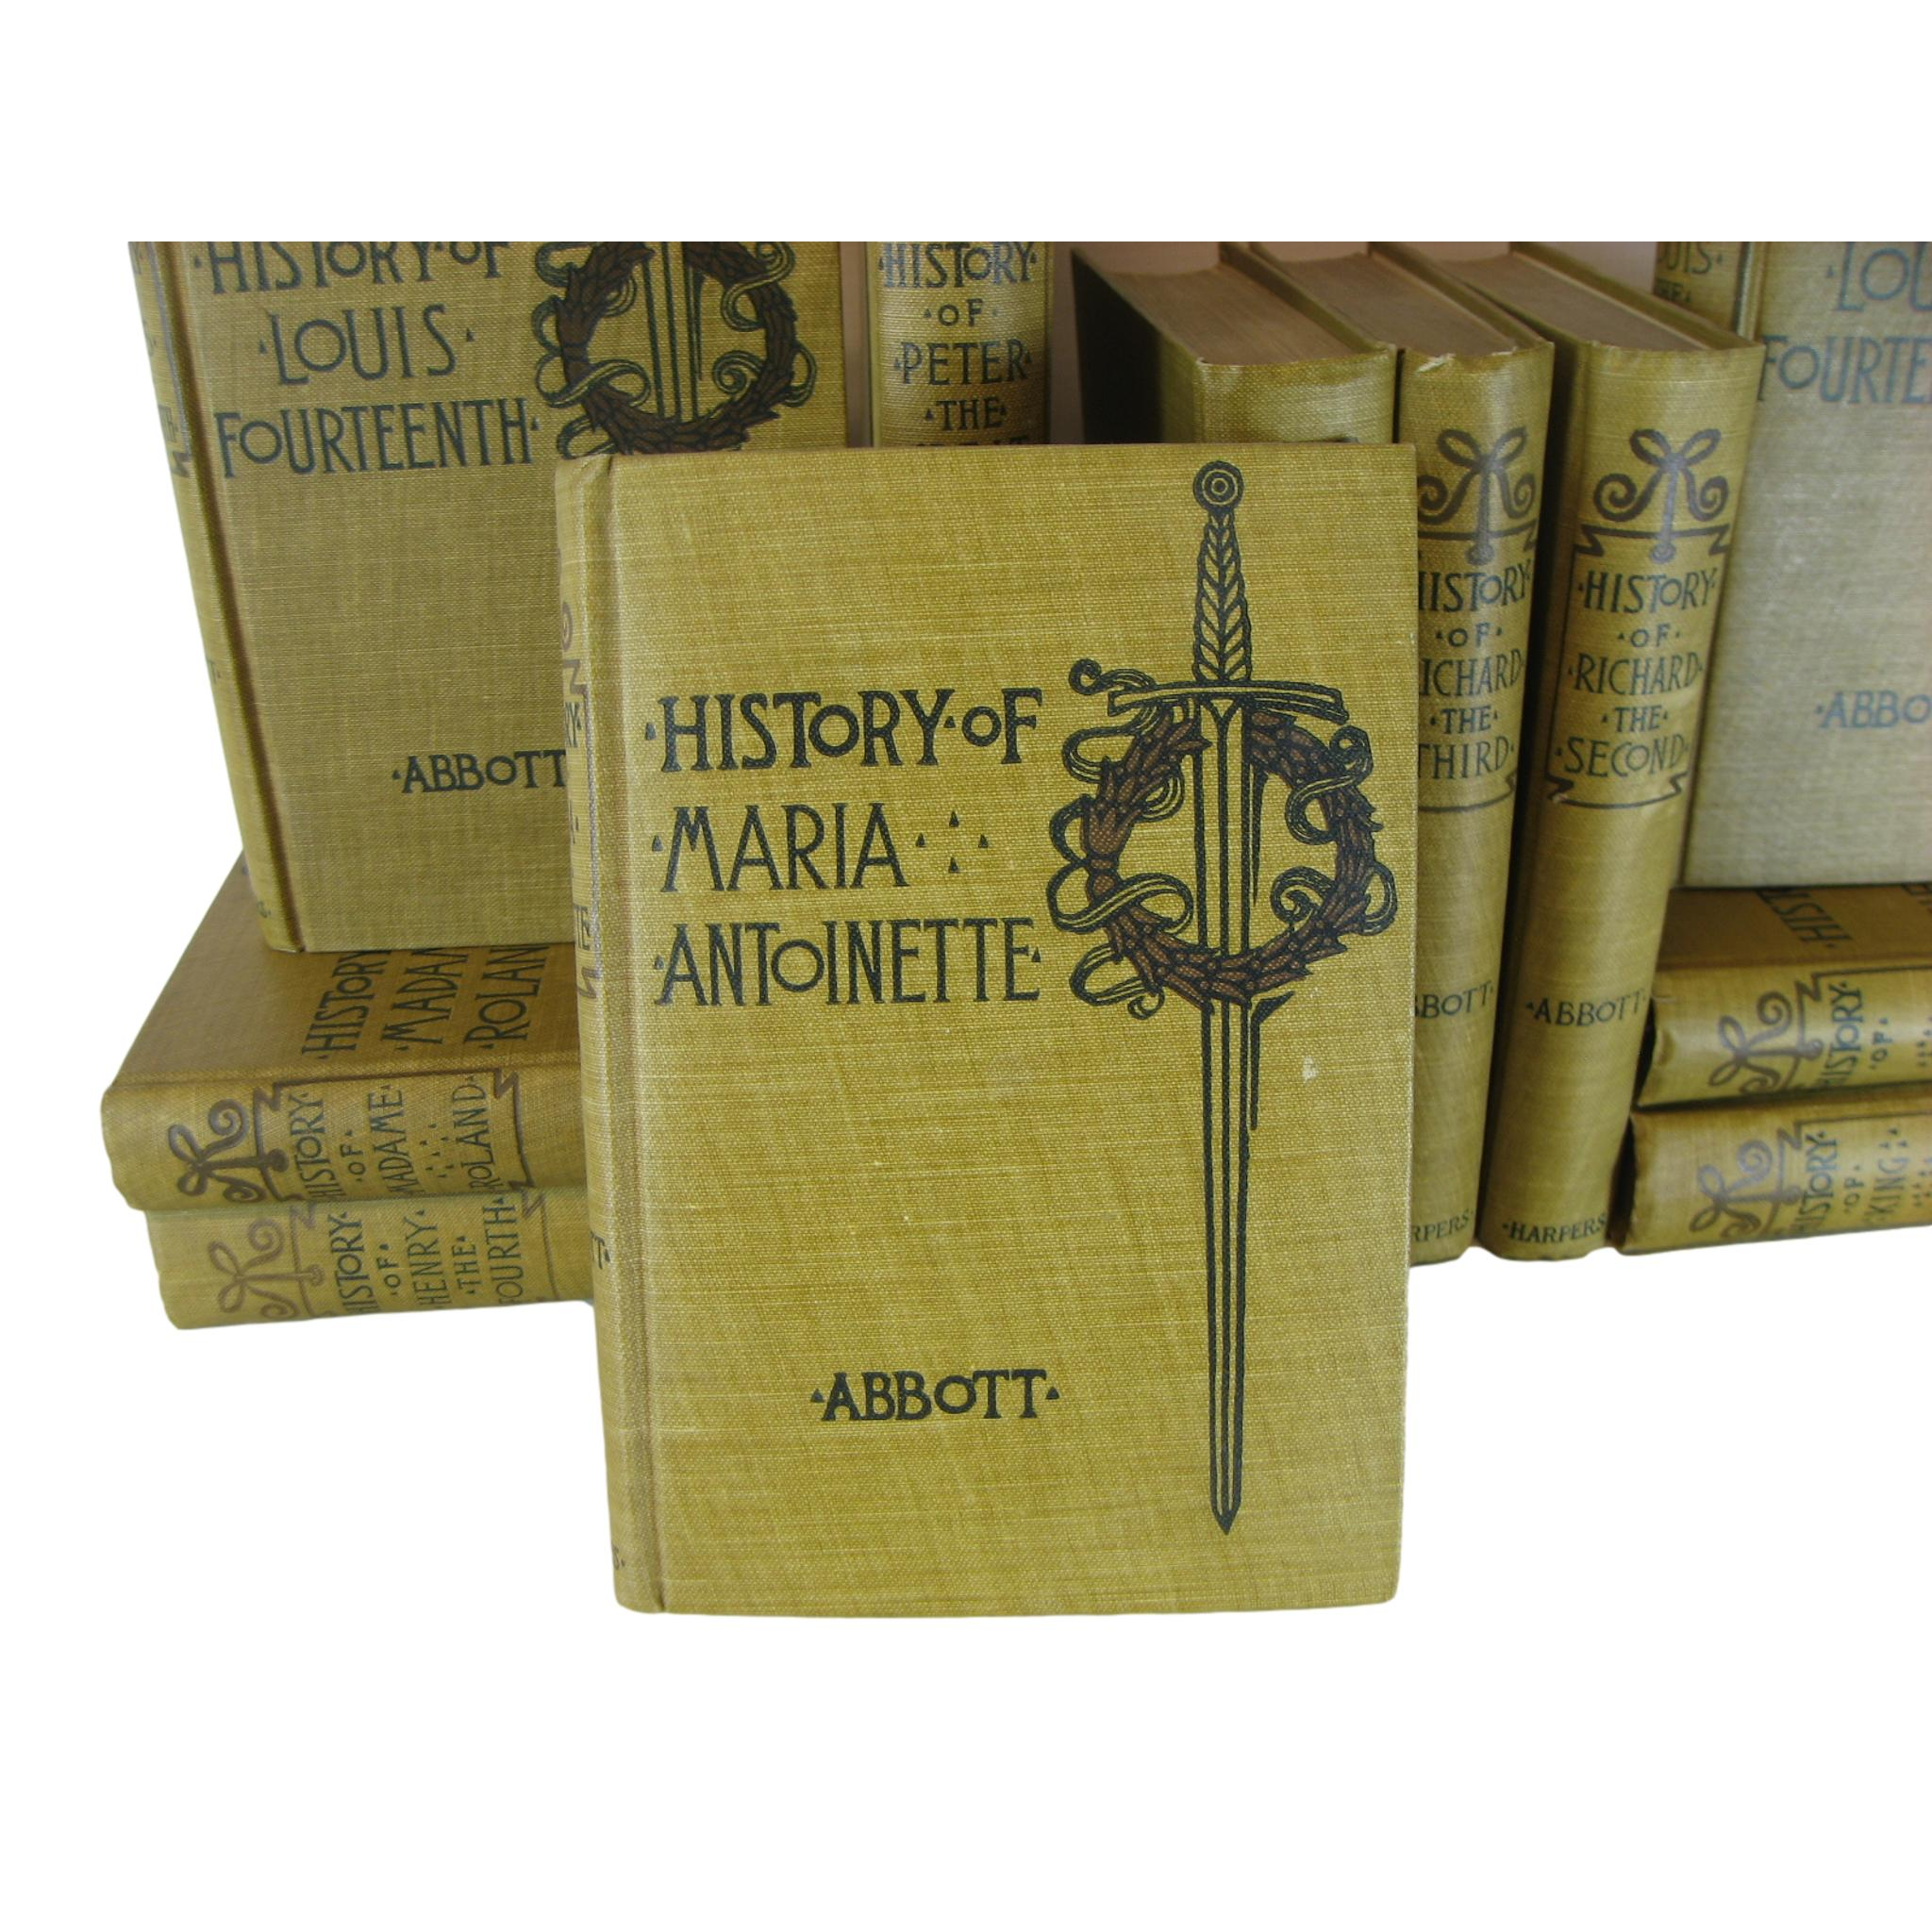 1901 Antique Book Set,  Makers of History Works by Jacob Abbott Books, Decorative Book Stack for Home Decor, S/11 - Decades of Vintage